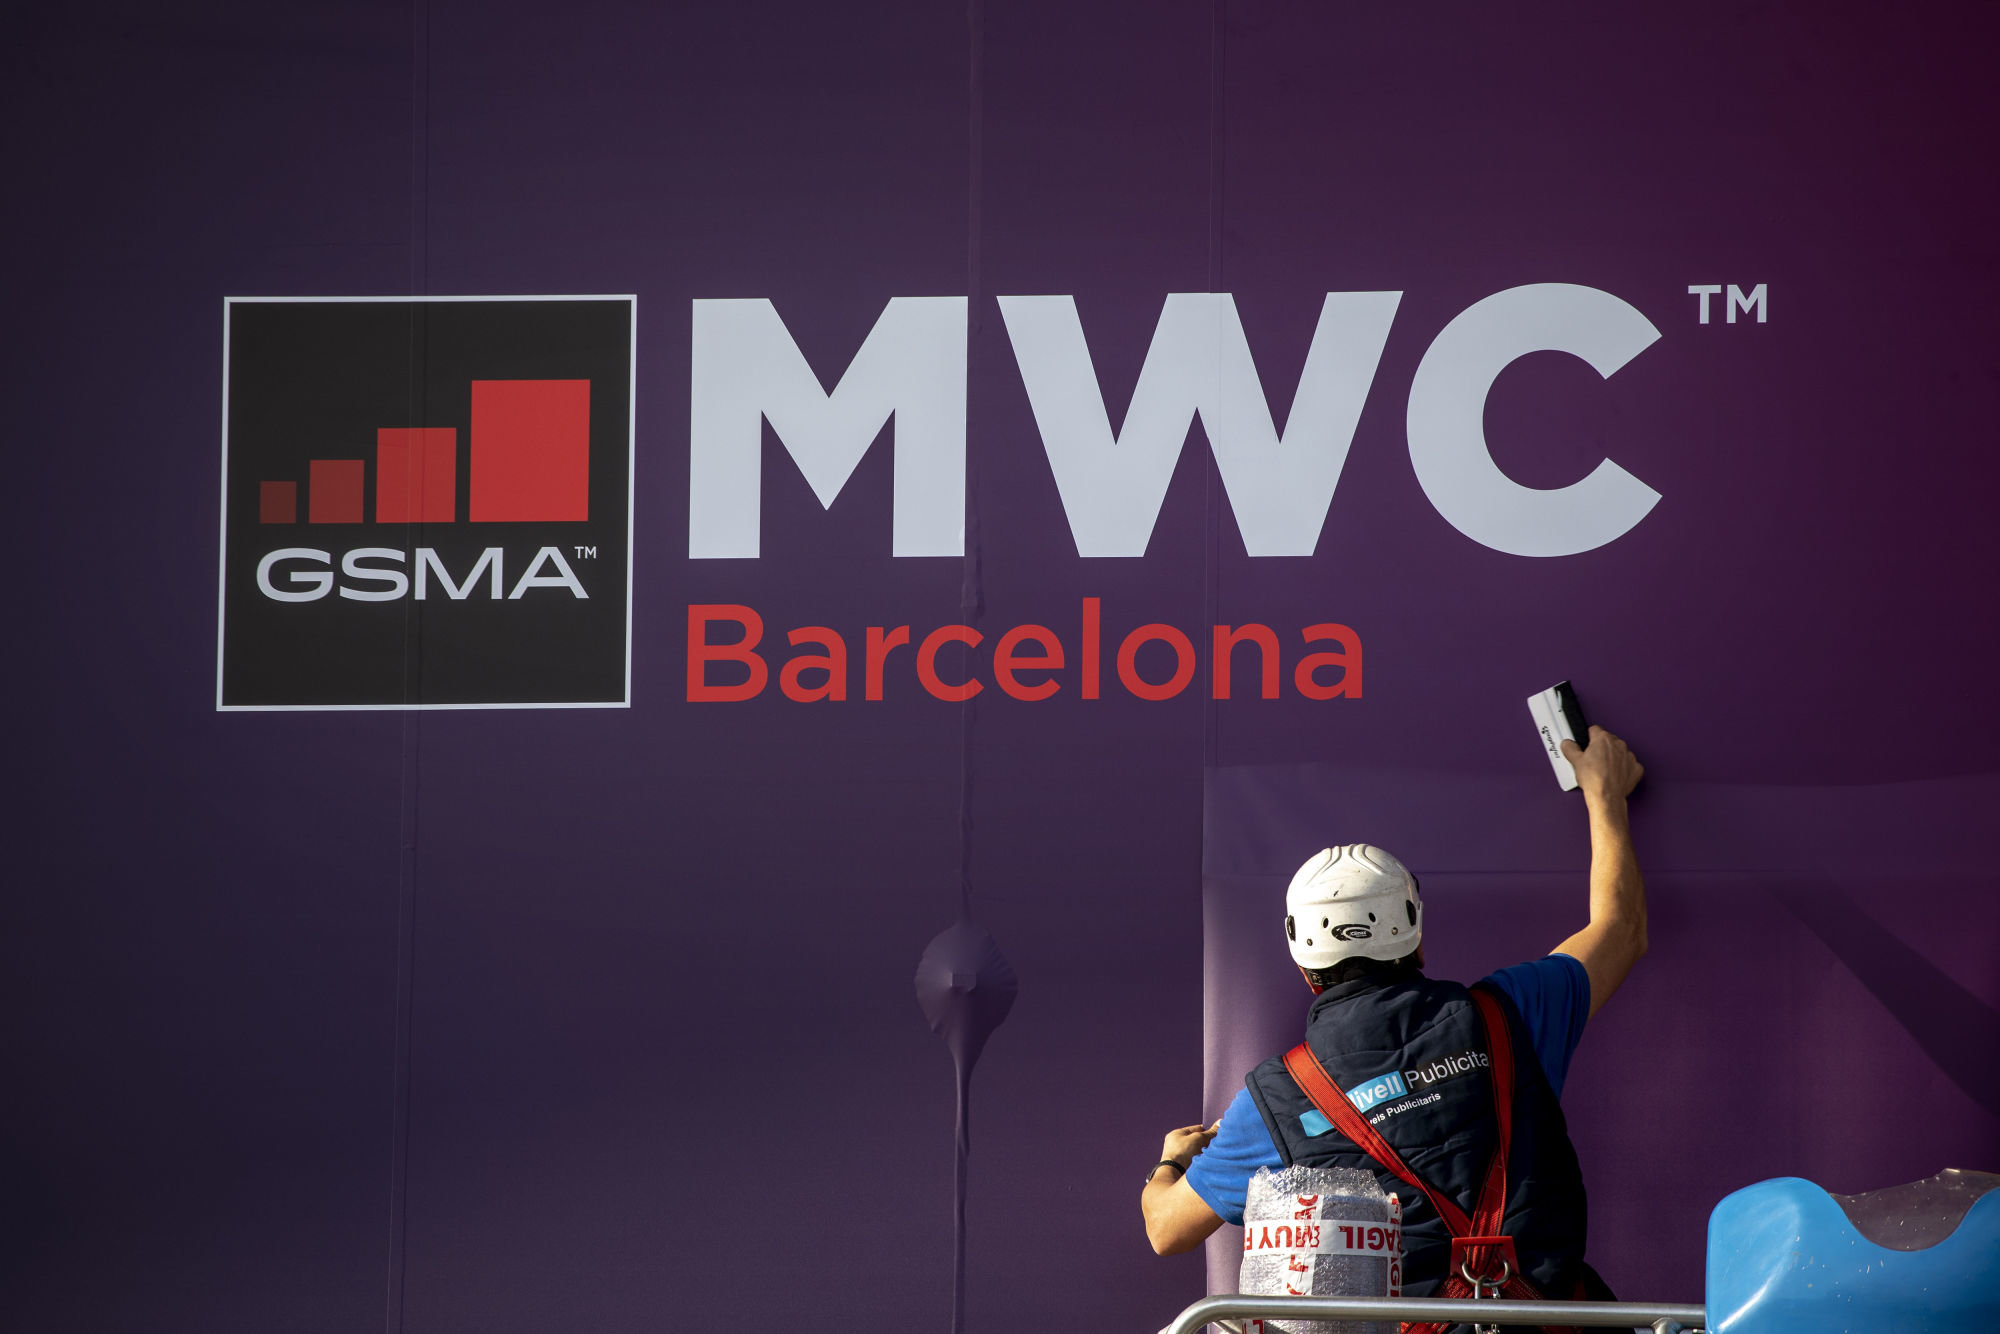 The real reason why the Mobile World Congress has been canceled.